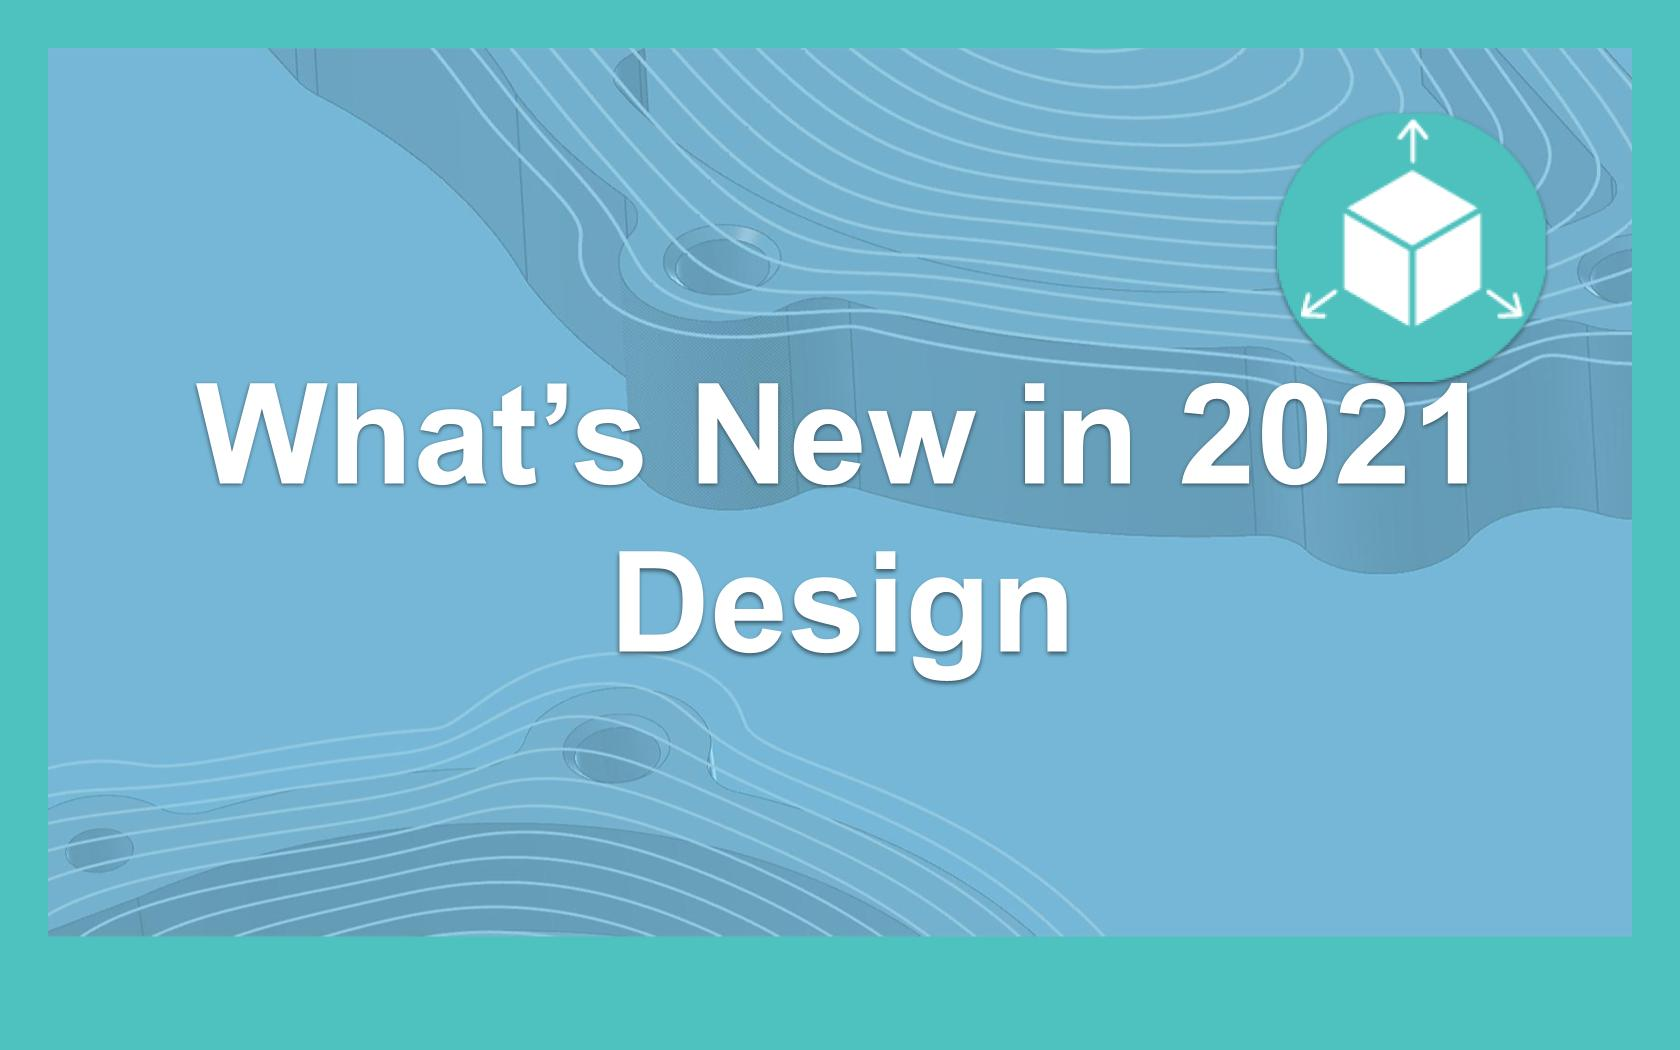 What's New in 2021 - Design